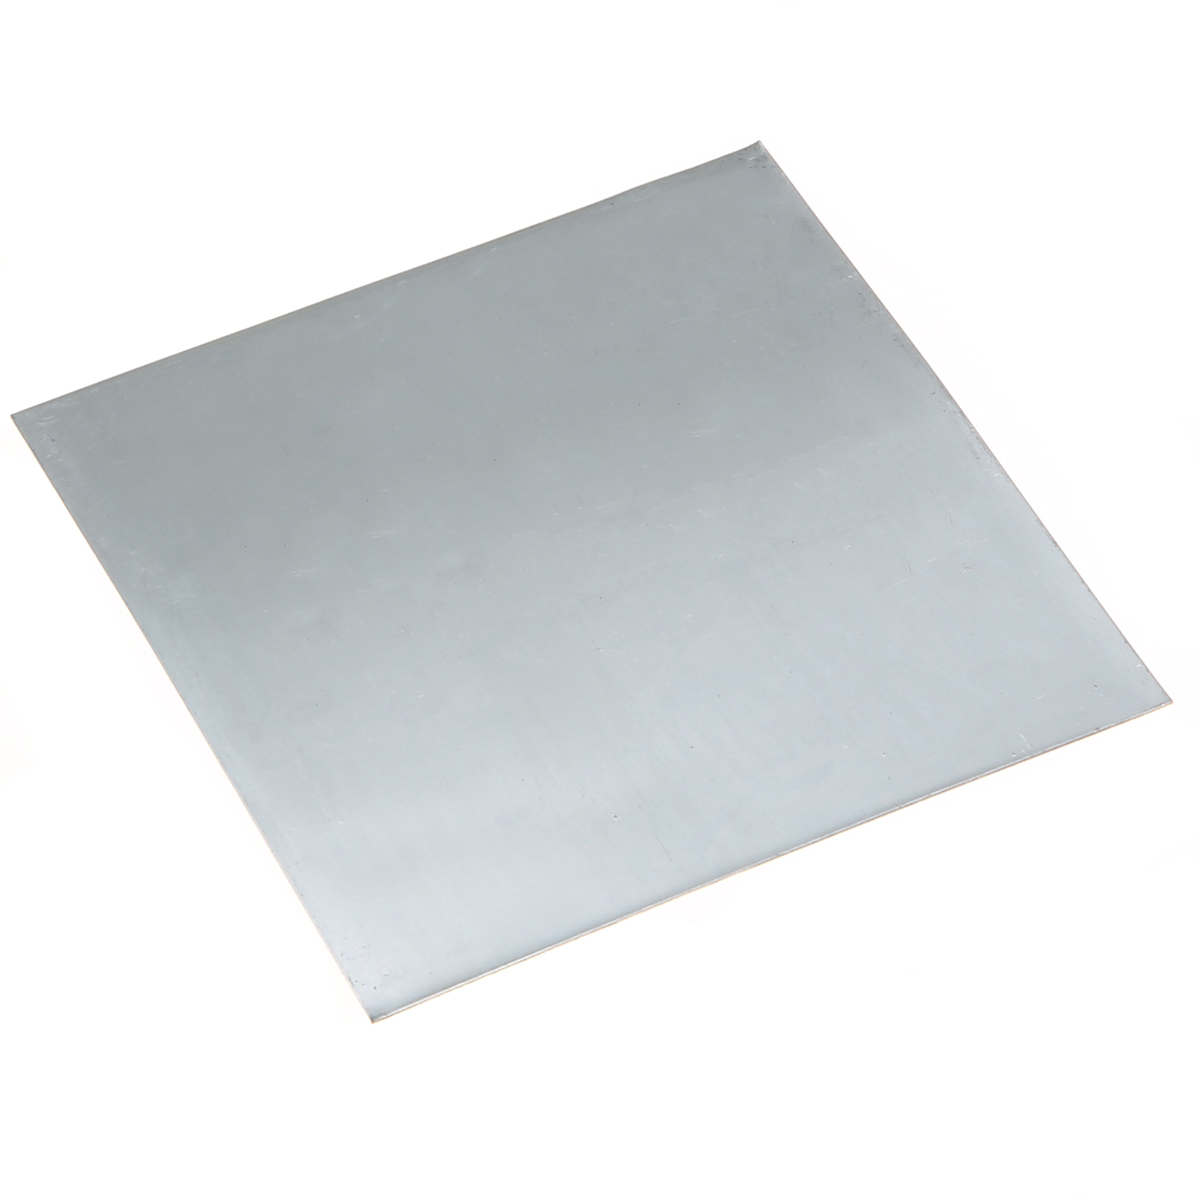 1Piece Pure Zinc Sheet 0.2mm Thickness Zn Plate Bluish-white Metal For Science Lab Chemical 100x100mm